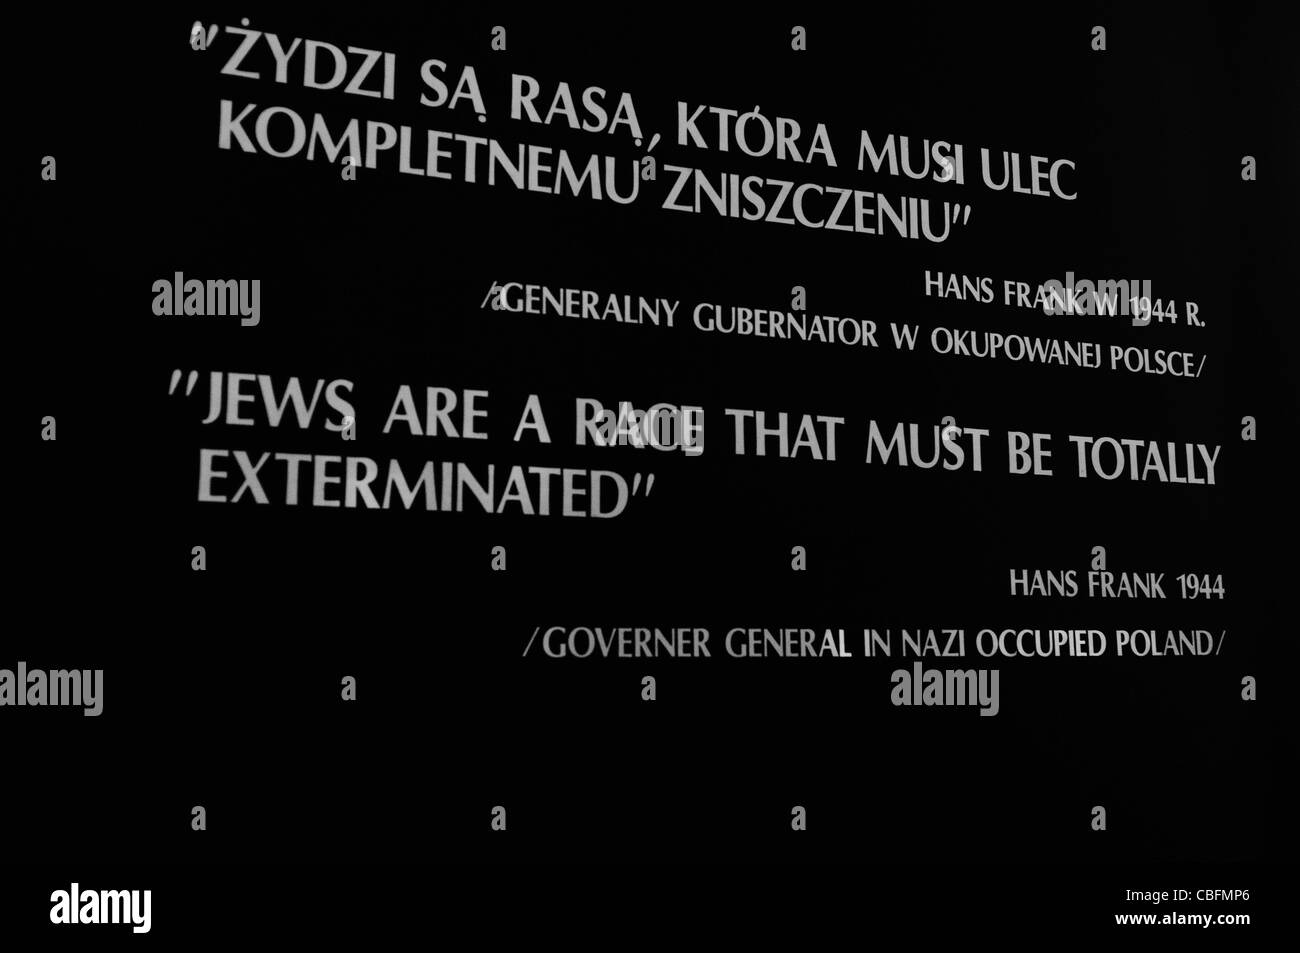 Sign at Auschwitz I Nazi concentration camp: 'Jews are a race that must be totally exterminated' in English - Stock Image